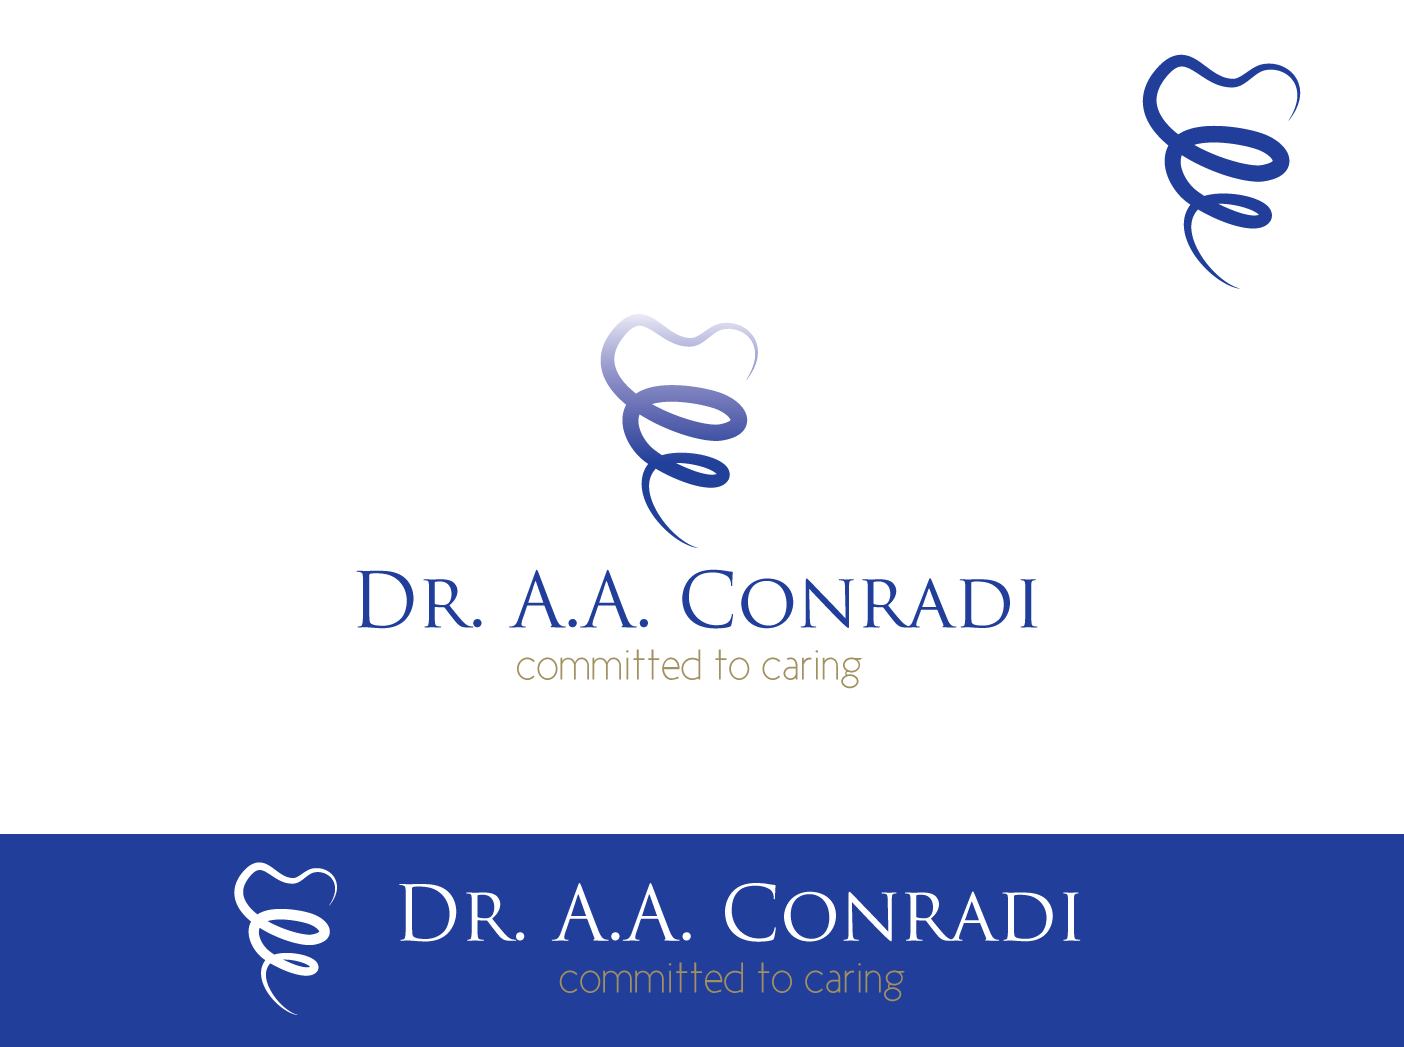 Logo Design by Severiano Fernandes - Entry No. 28 in the Logo Design Contest Unique Logo Design Wanted for Dr. A.A. Conradi.